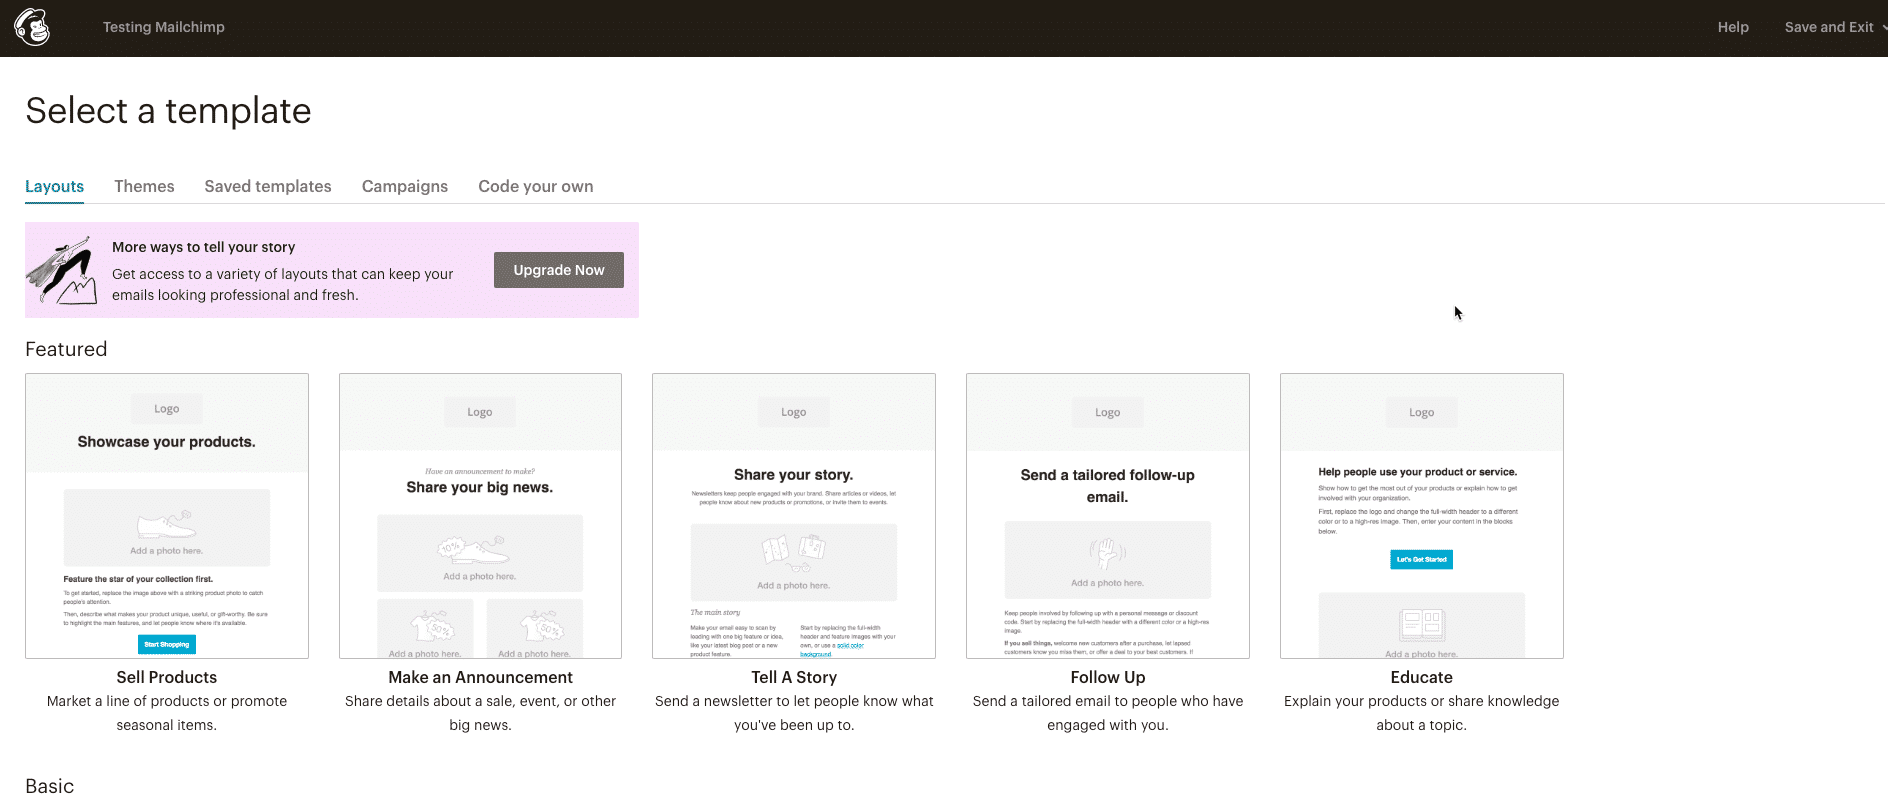 Email layouts in Mailchimp